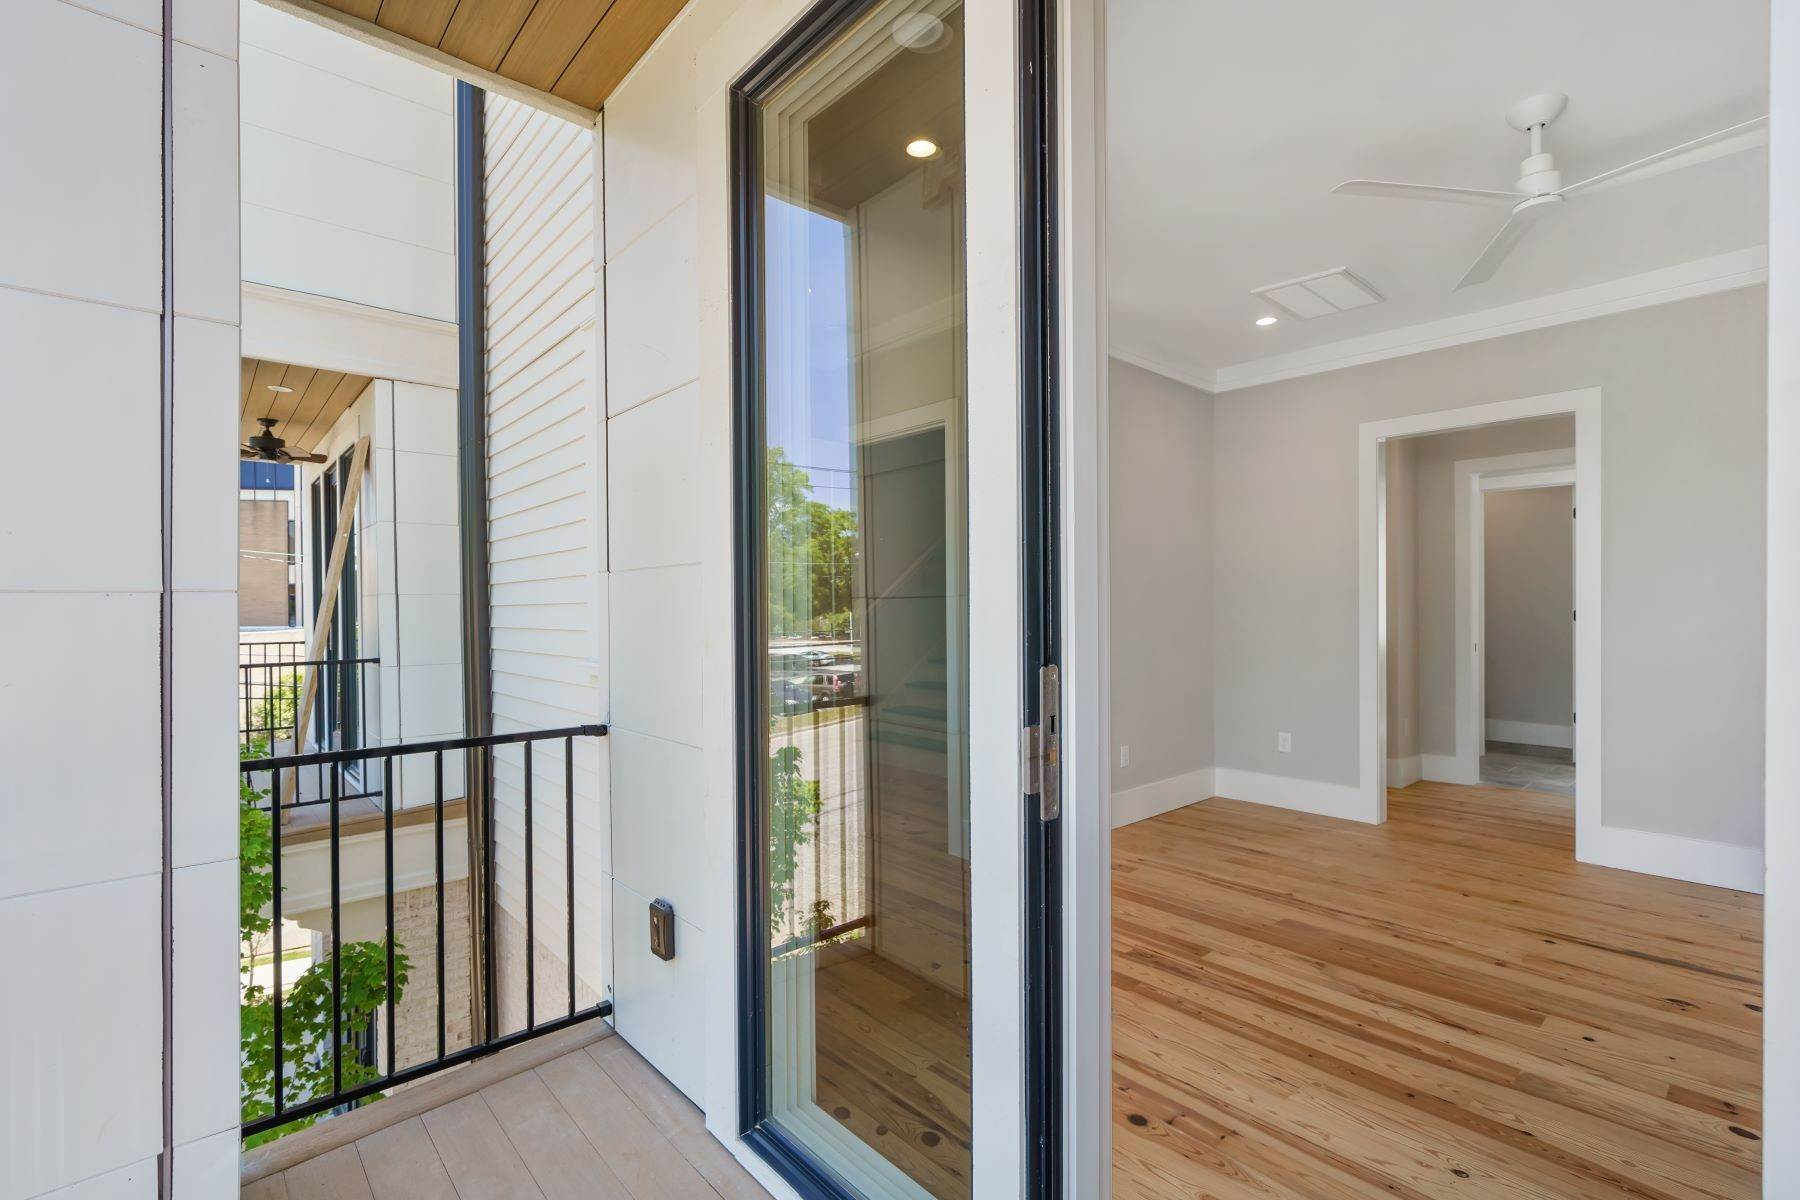 22. townhouses for Sale at 42 Claussen Avenue, Greenville, SC 29601 Greenville, SC 29601